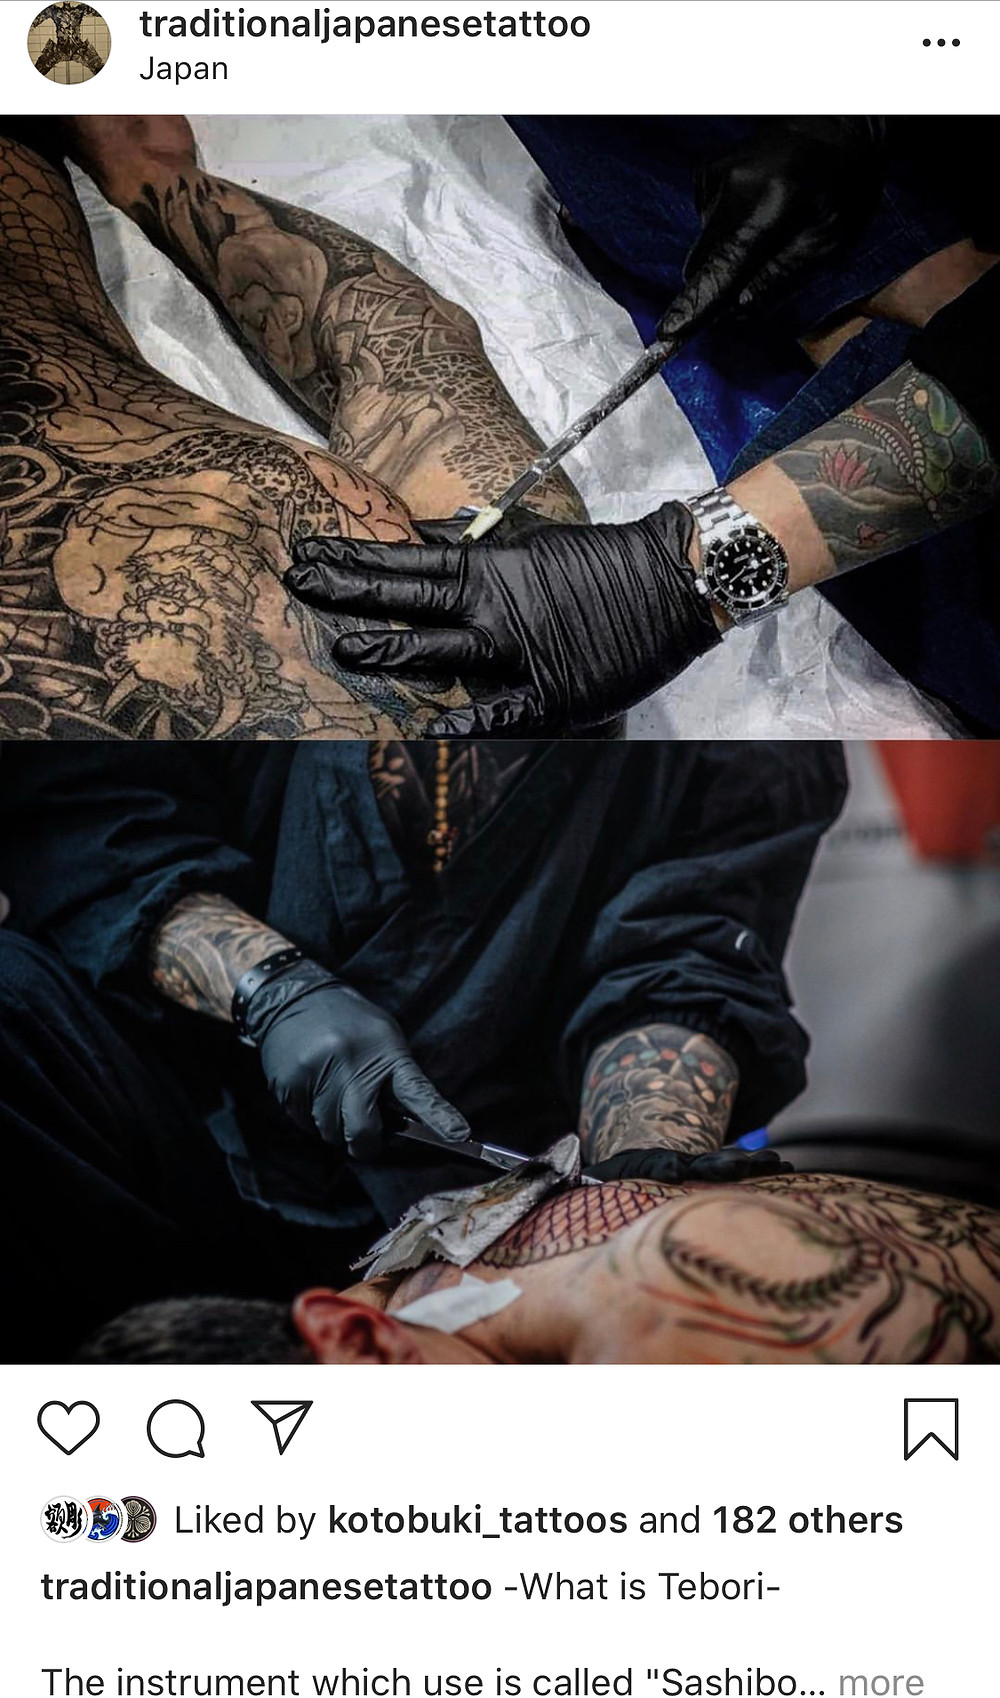 Traditional Japanese Tattoo Association